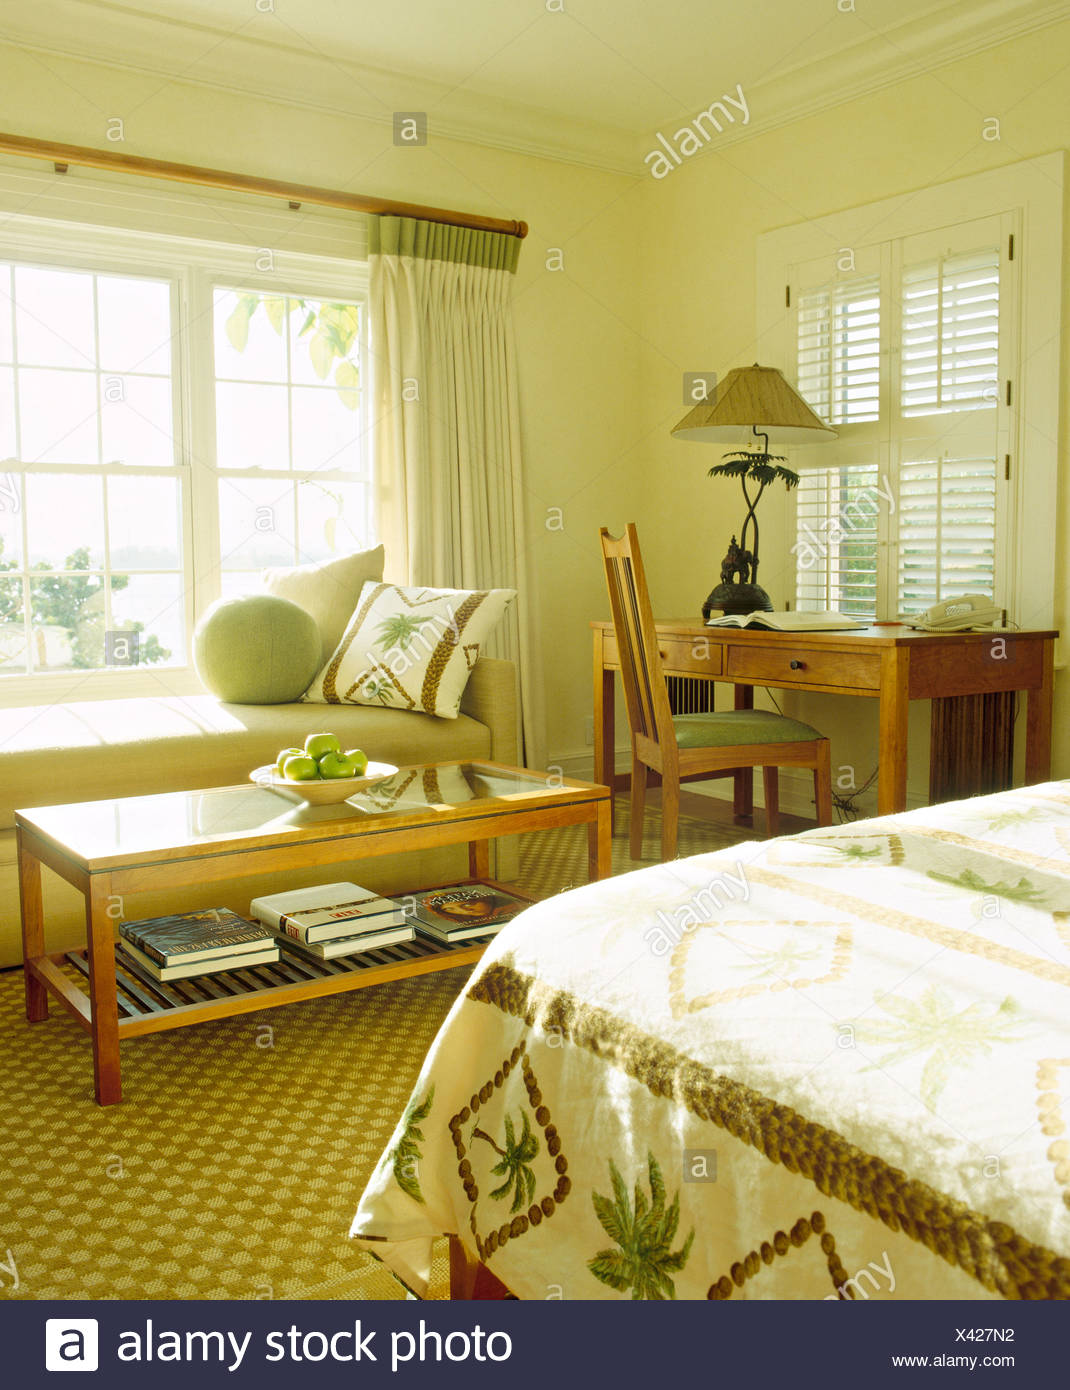 Picture of: Glass Topped Coffee Table In Front Of Sofa In Window Of Bermudan Bedroom With Decorative Bed Cover And Louvre Shutters Stock Photo Alamy